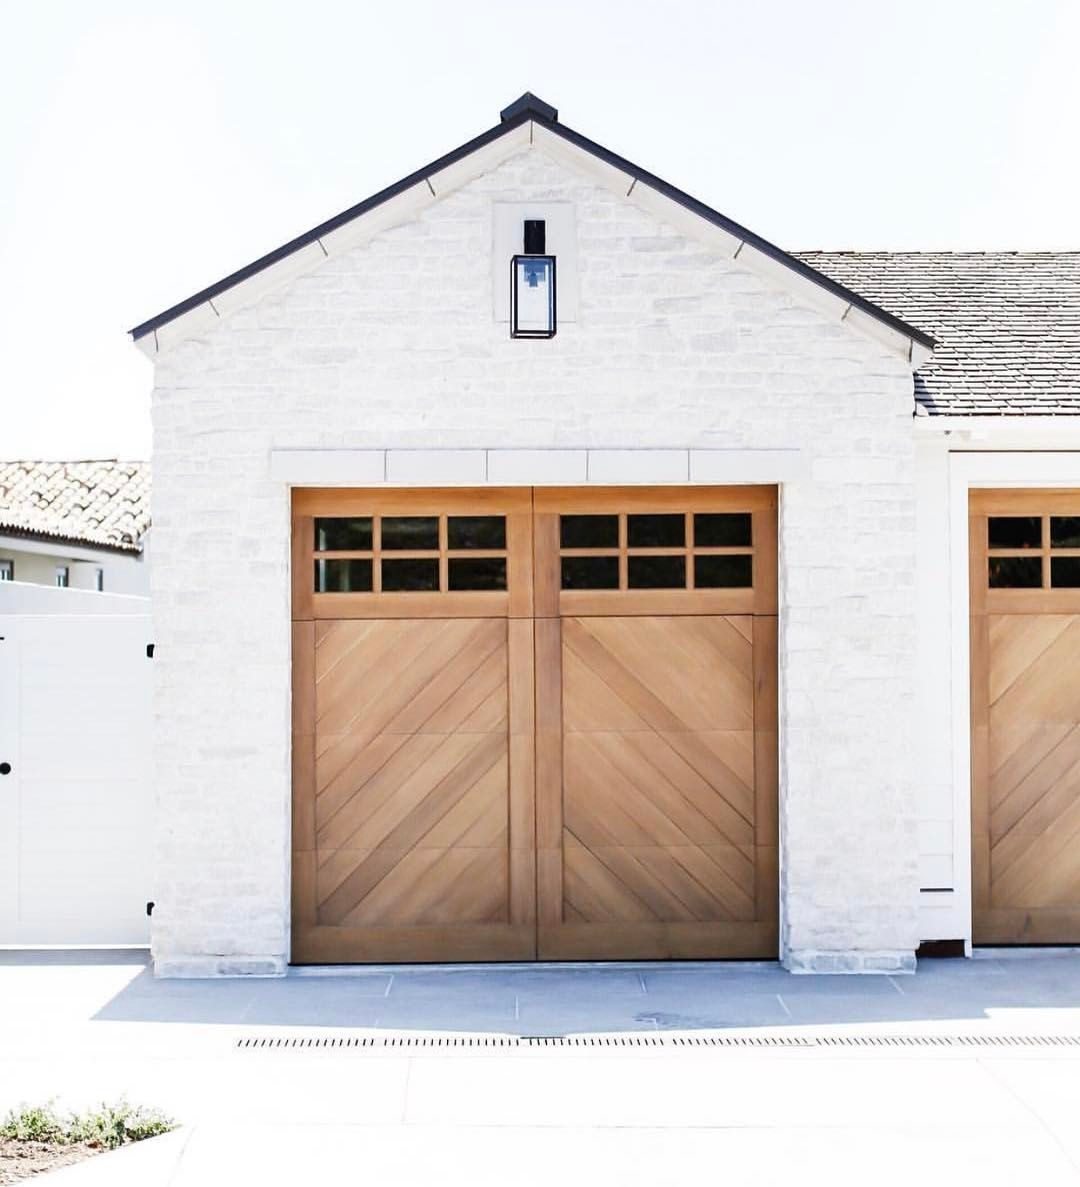 This is just so perfect natural wood garage on a white Brick and wood house